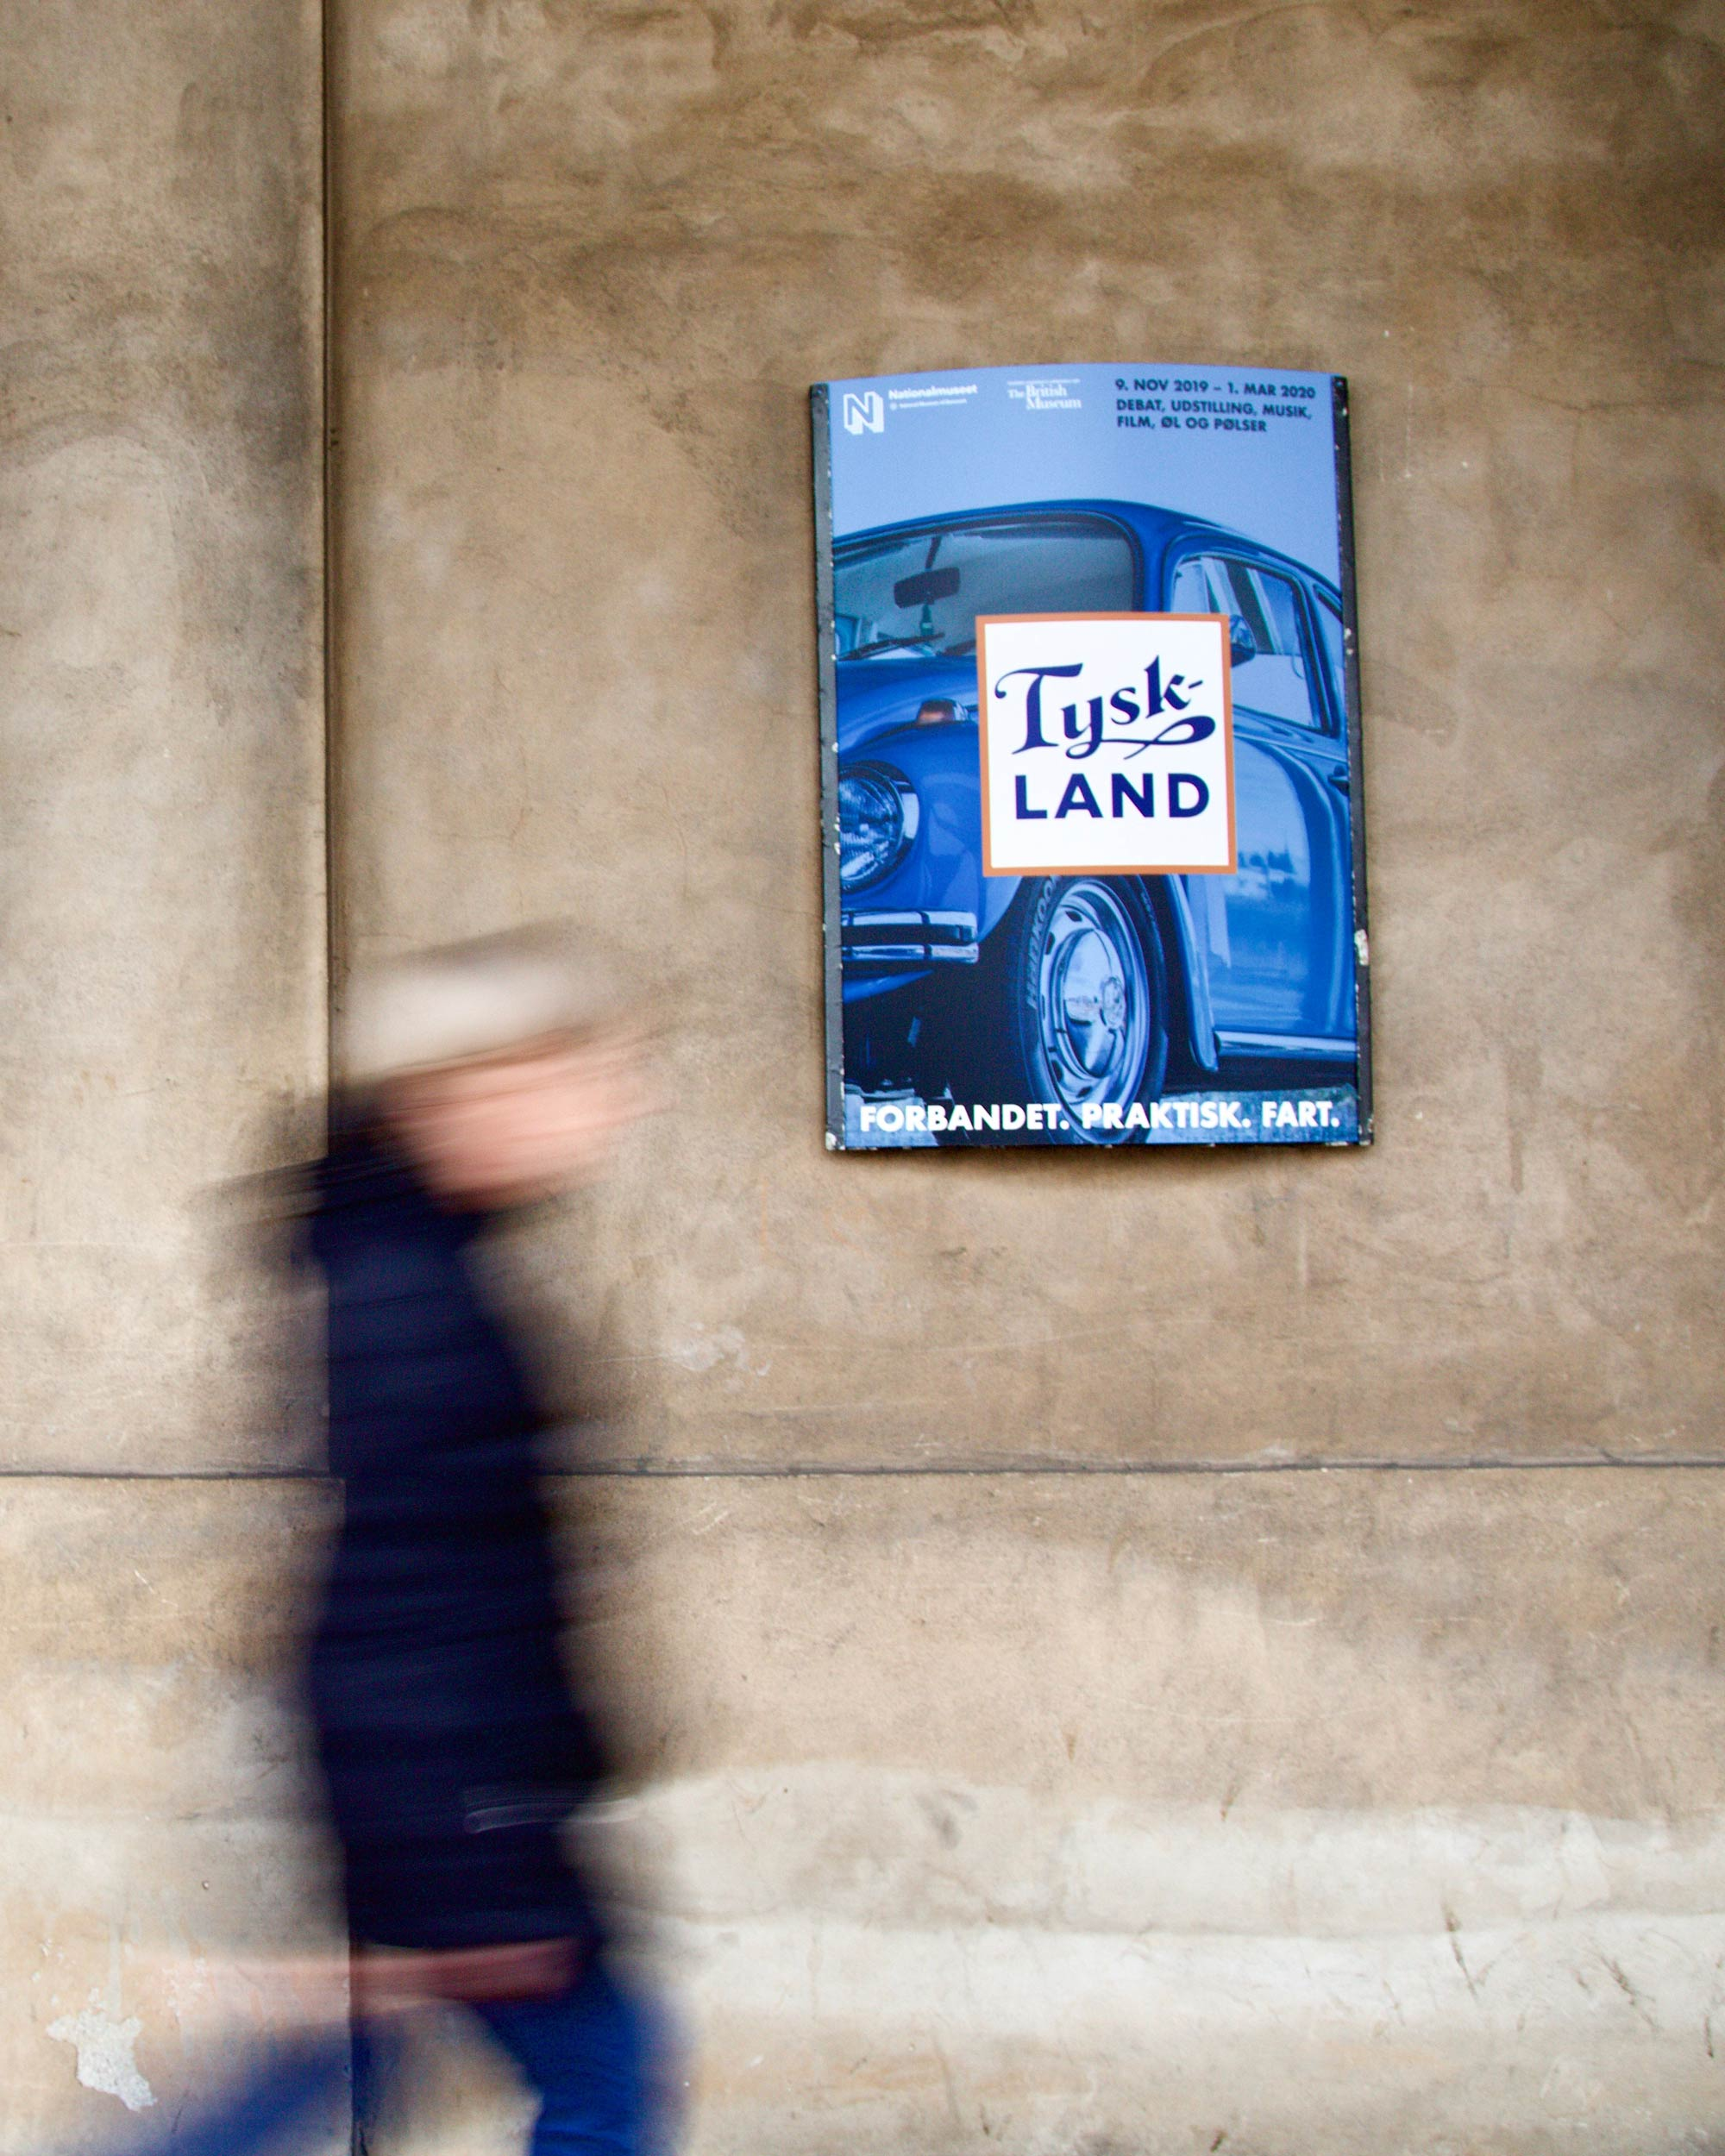 blue poster on wall saying 'Tyskland' with person walking past